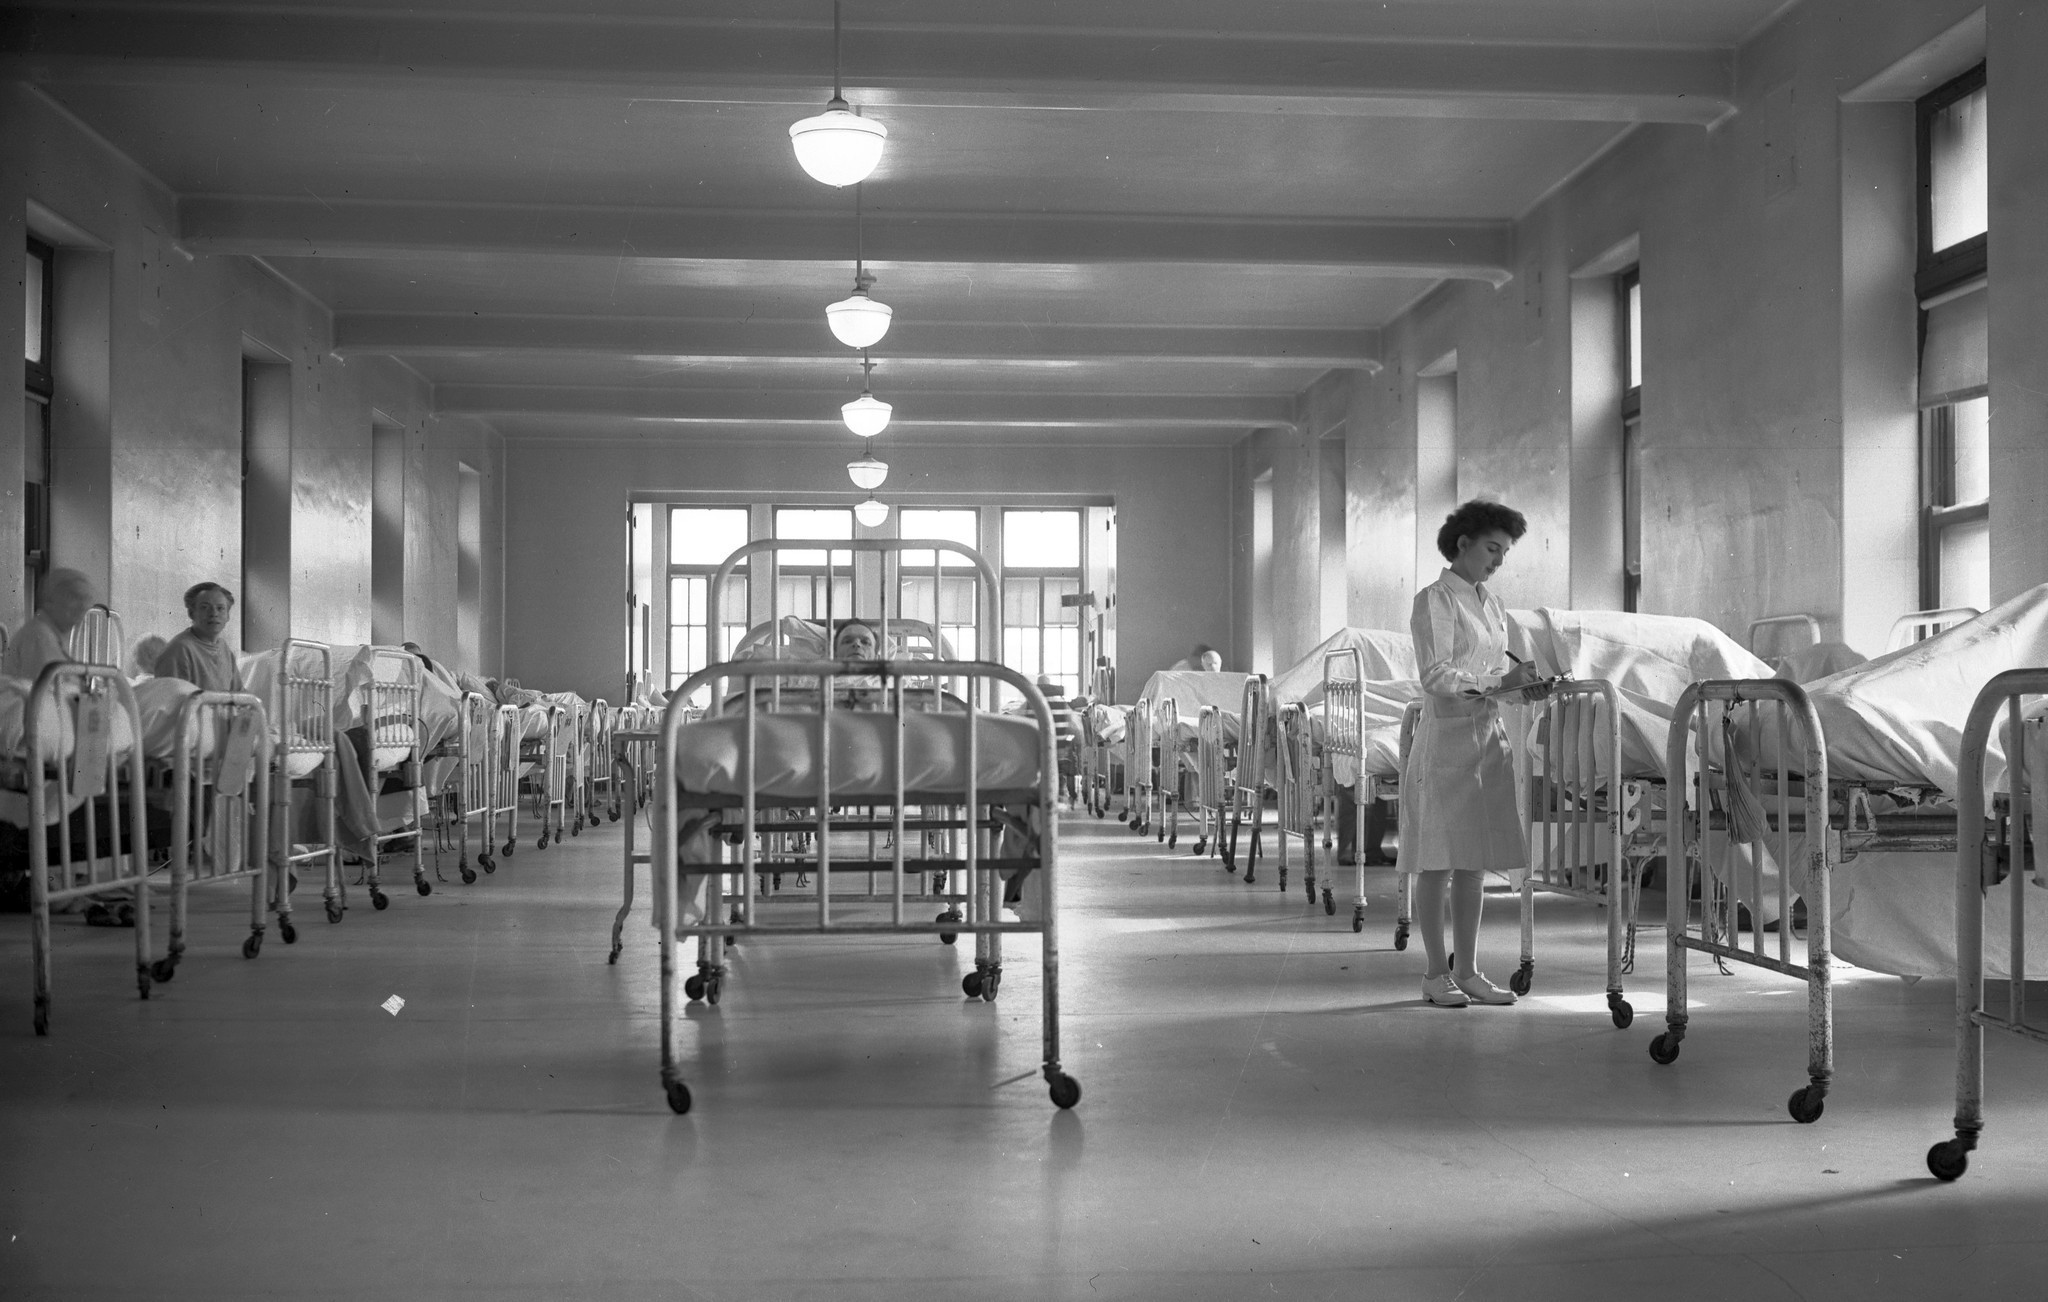 Communing with Cook County Hospitals ghosts of the past  Chicago Tribune